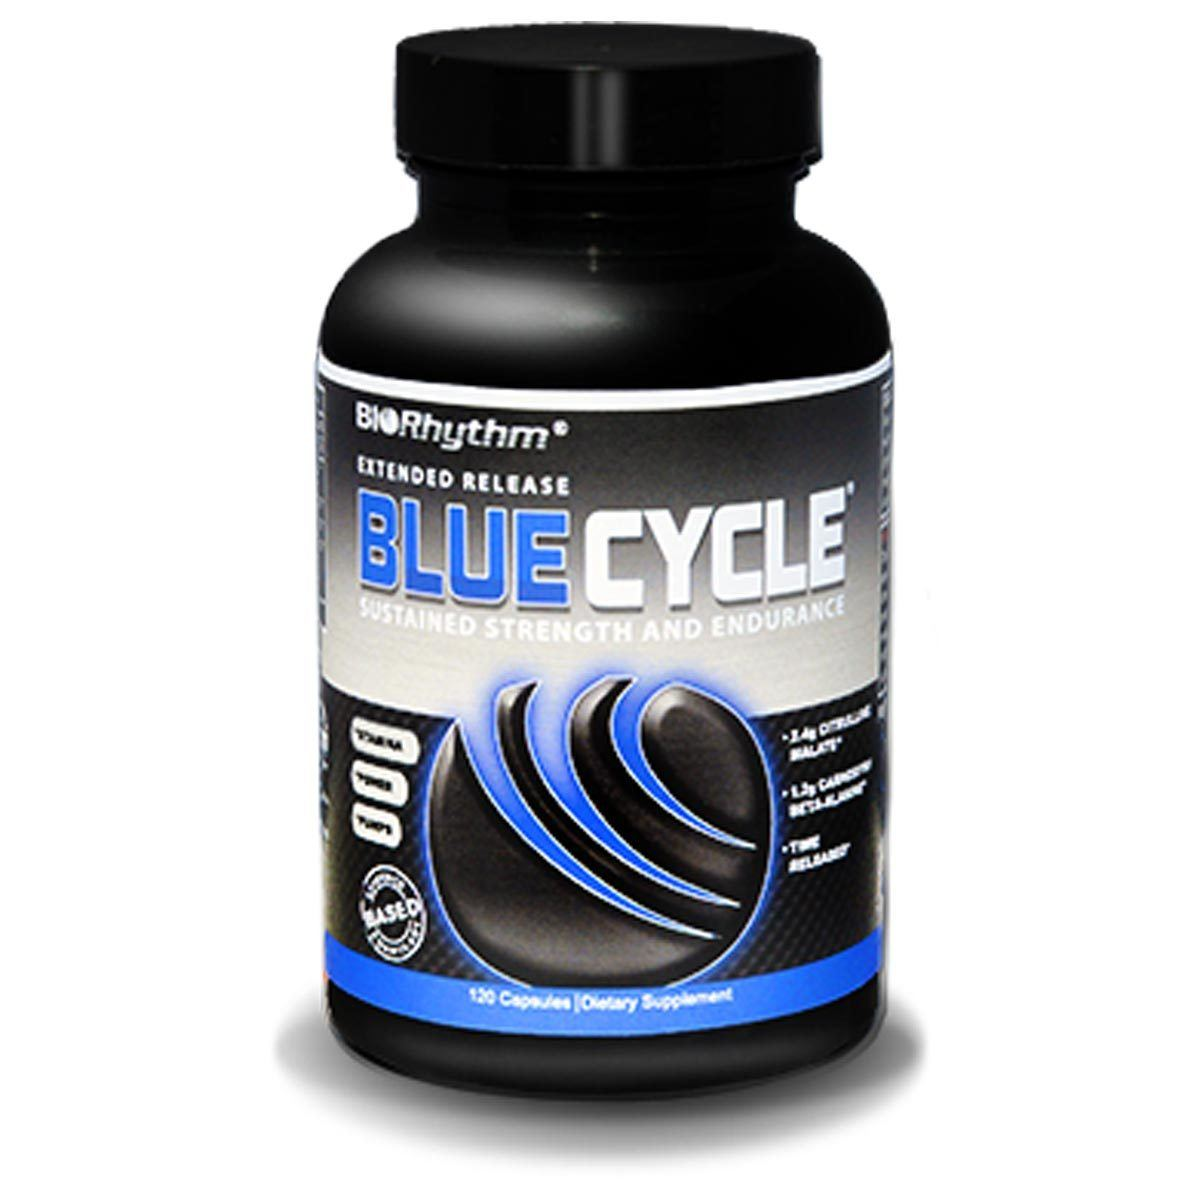 BioRhythm Blue Cycle 120 Caps Sport Performance / Recovery BioRhythm  (1059192602667)